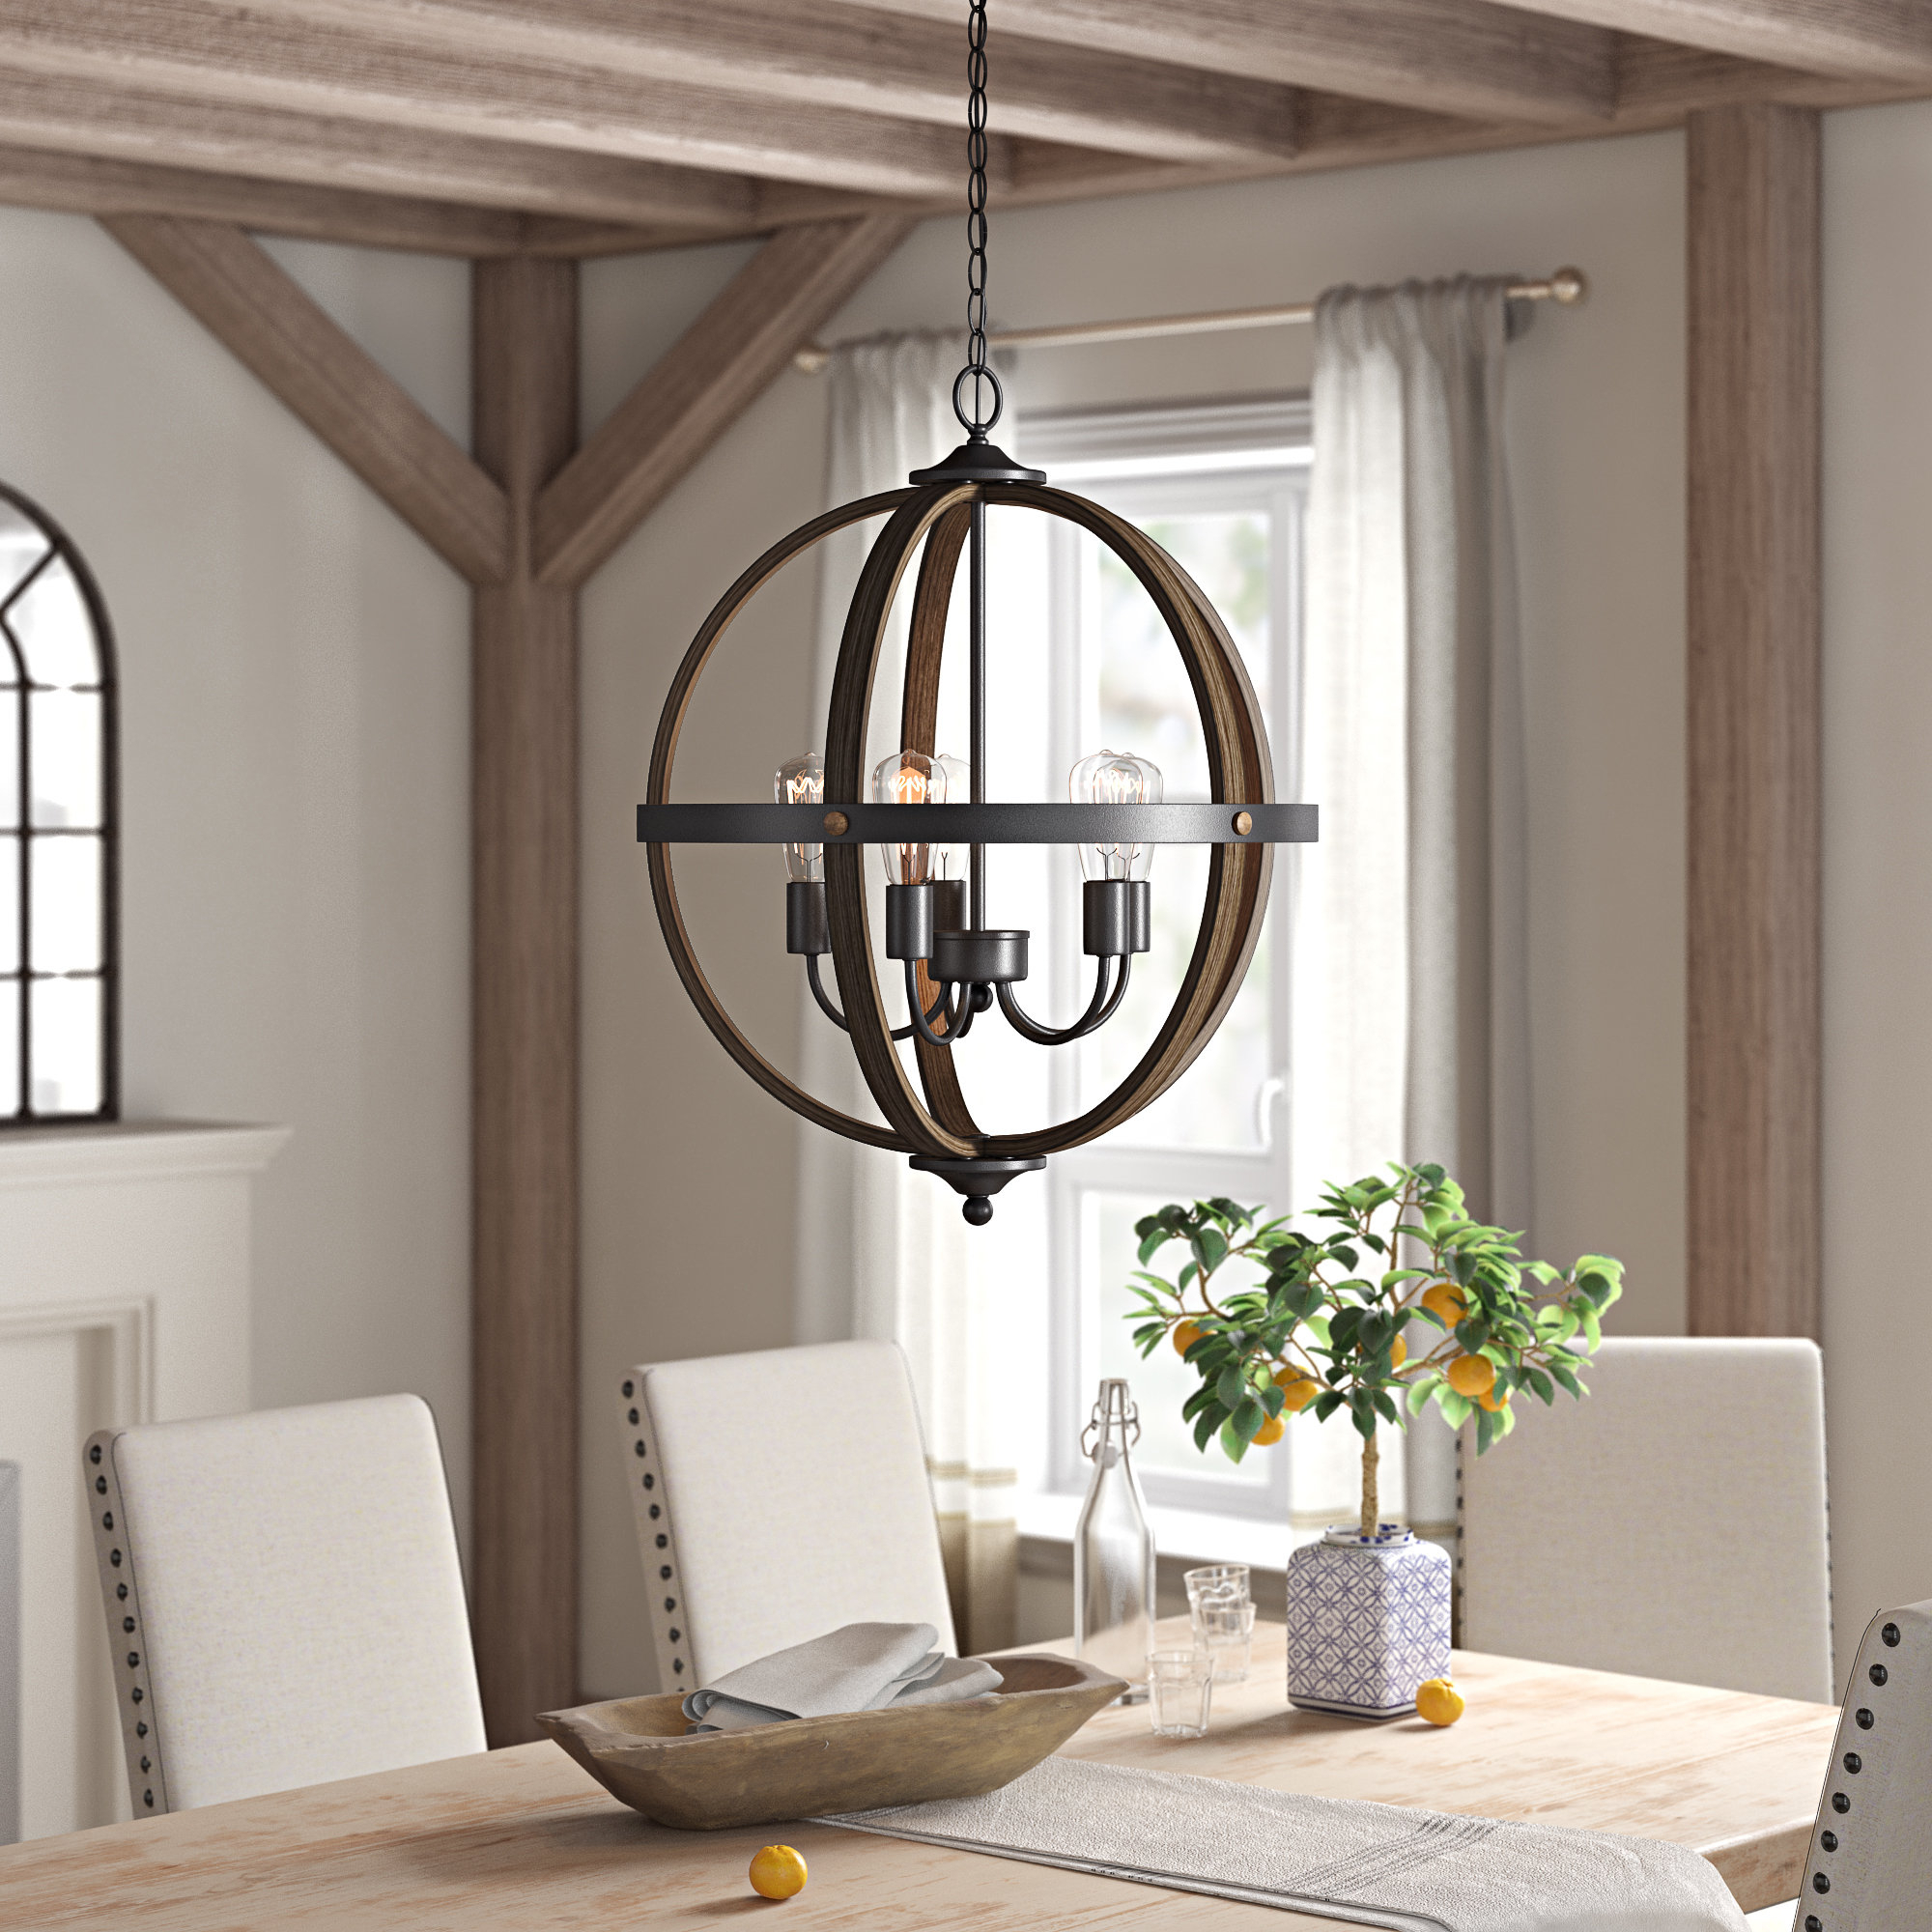 Makeba 5 Light Globe Chandelier Within Best And Newest Filipe Globe Chandeliers (View 13 of 20)